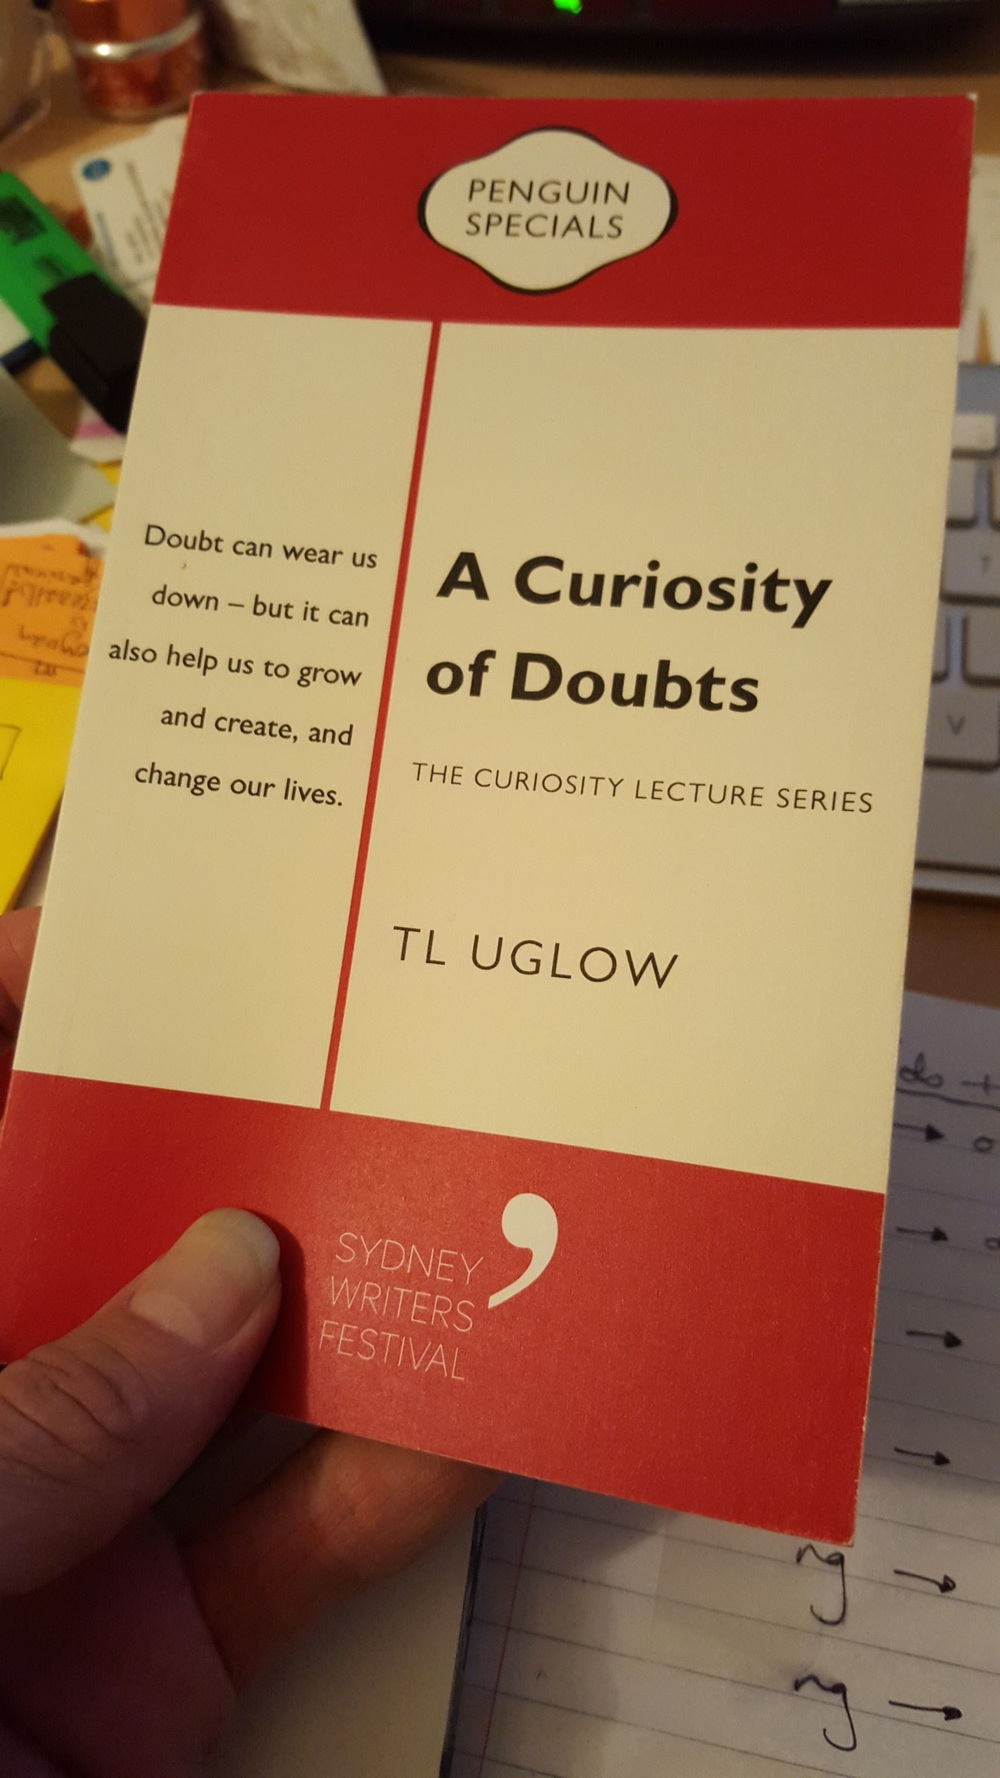 A Curiosity of Doubts is a Penguin Special Edition published for the Sydney Writer's Festival.